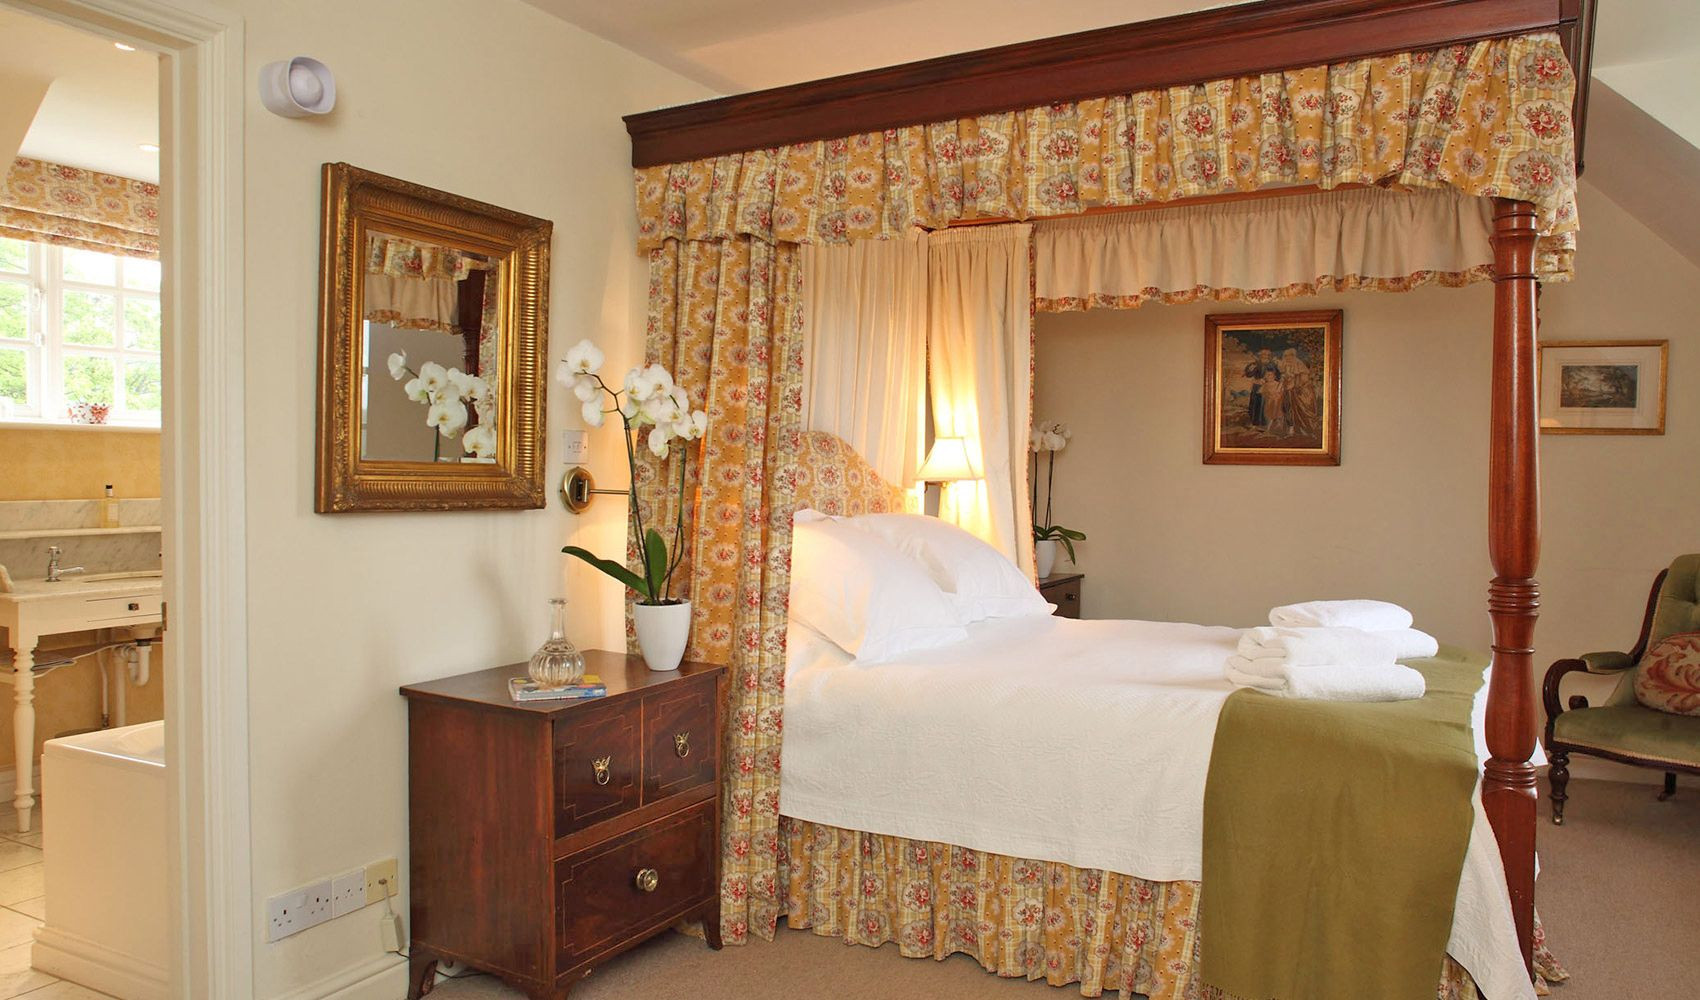 First floor: Master bedroom with a four poster bed & en suite bathroom